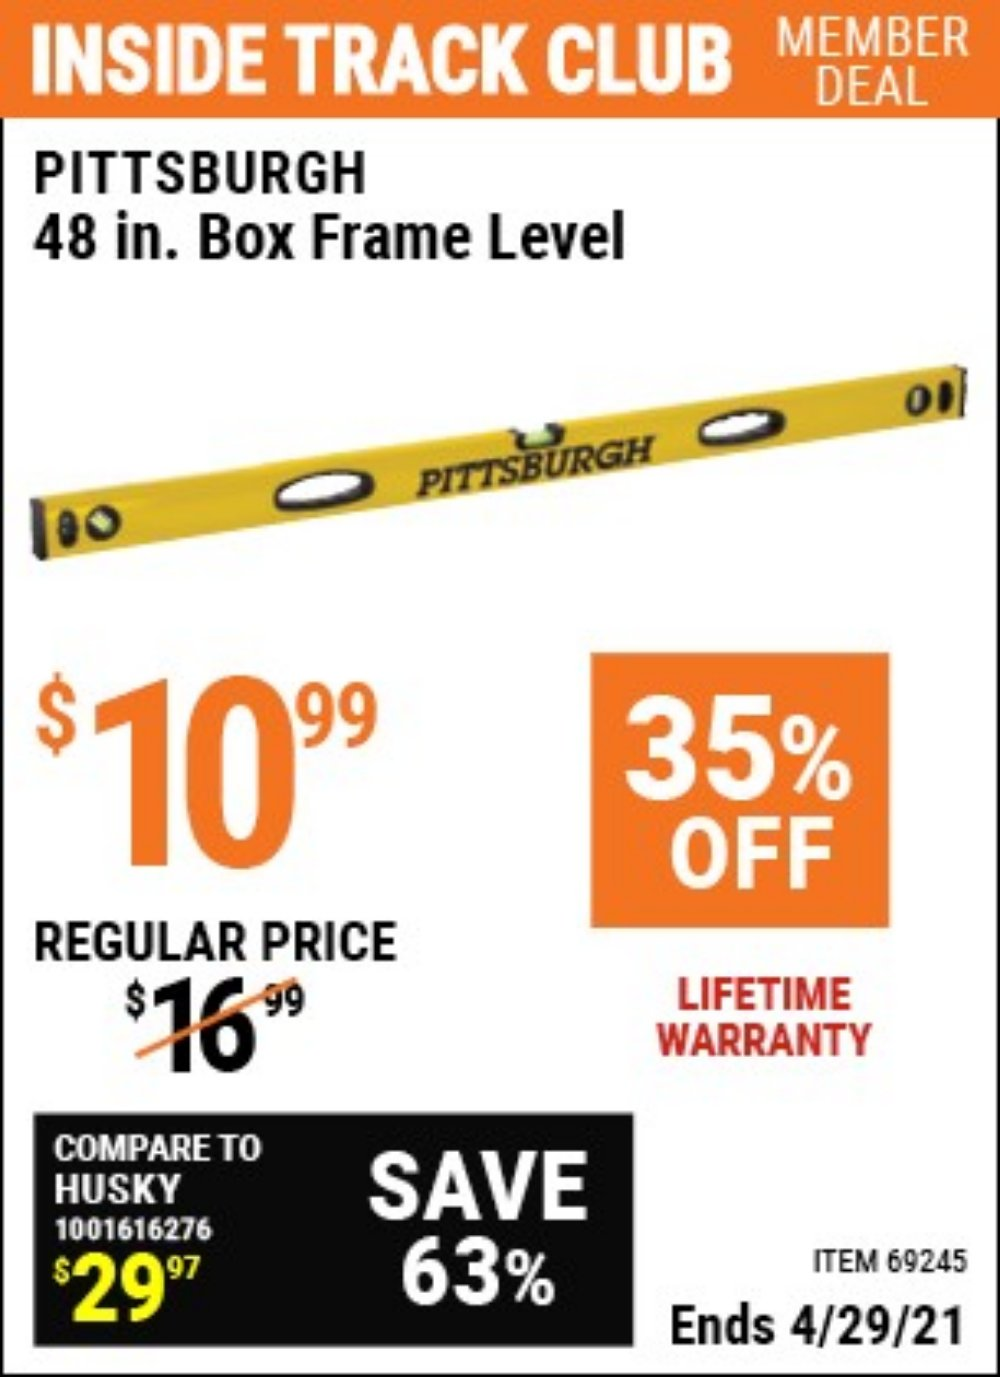 Harbor Freight Coupon, HF Coupons - 48